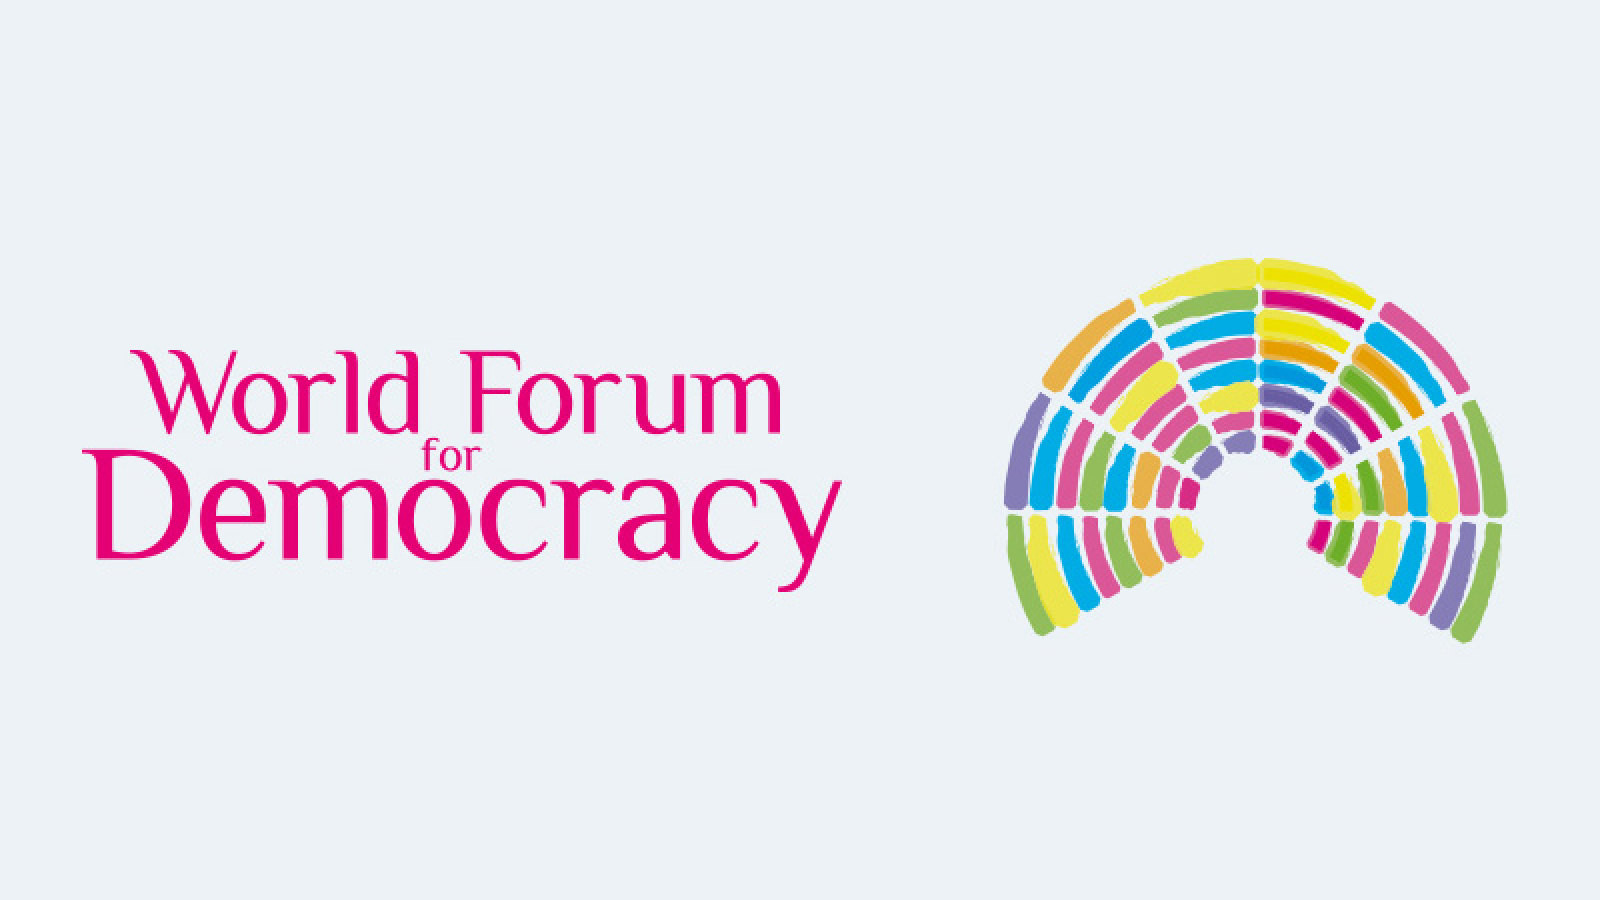 World Forum for Democracy 2019